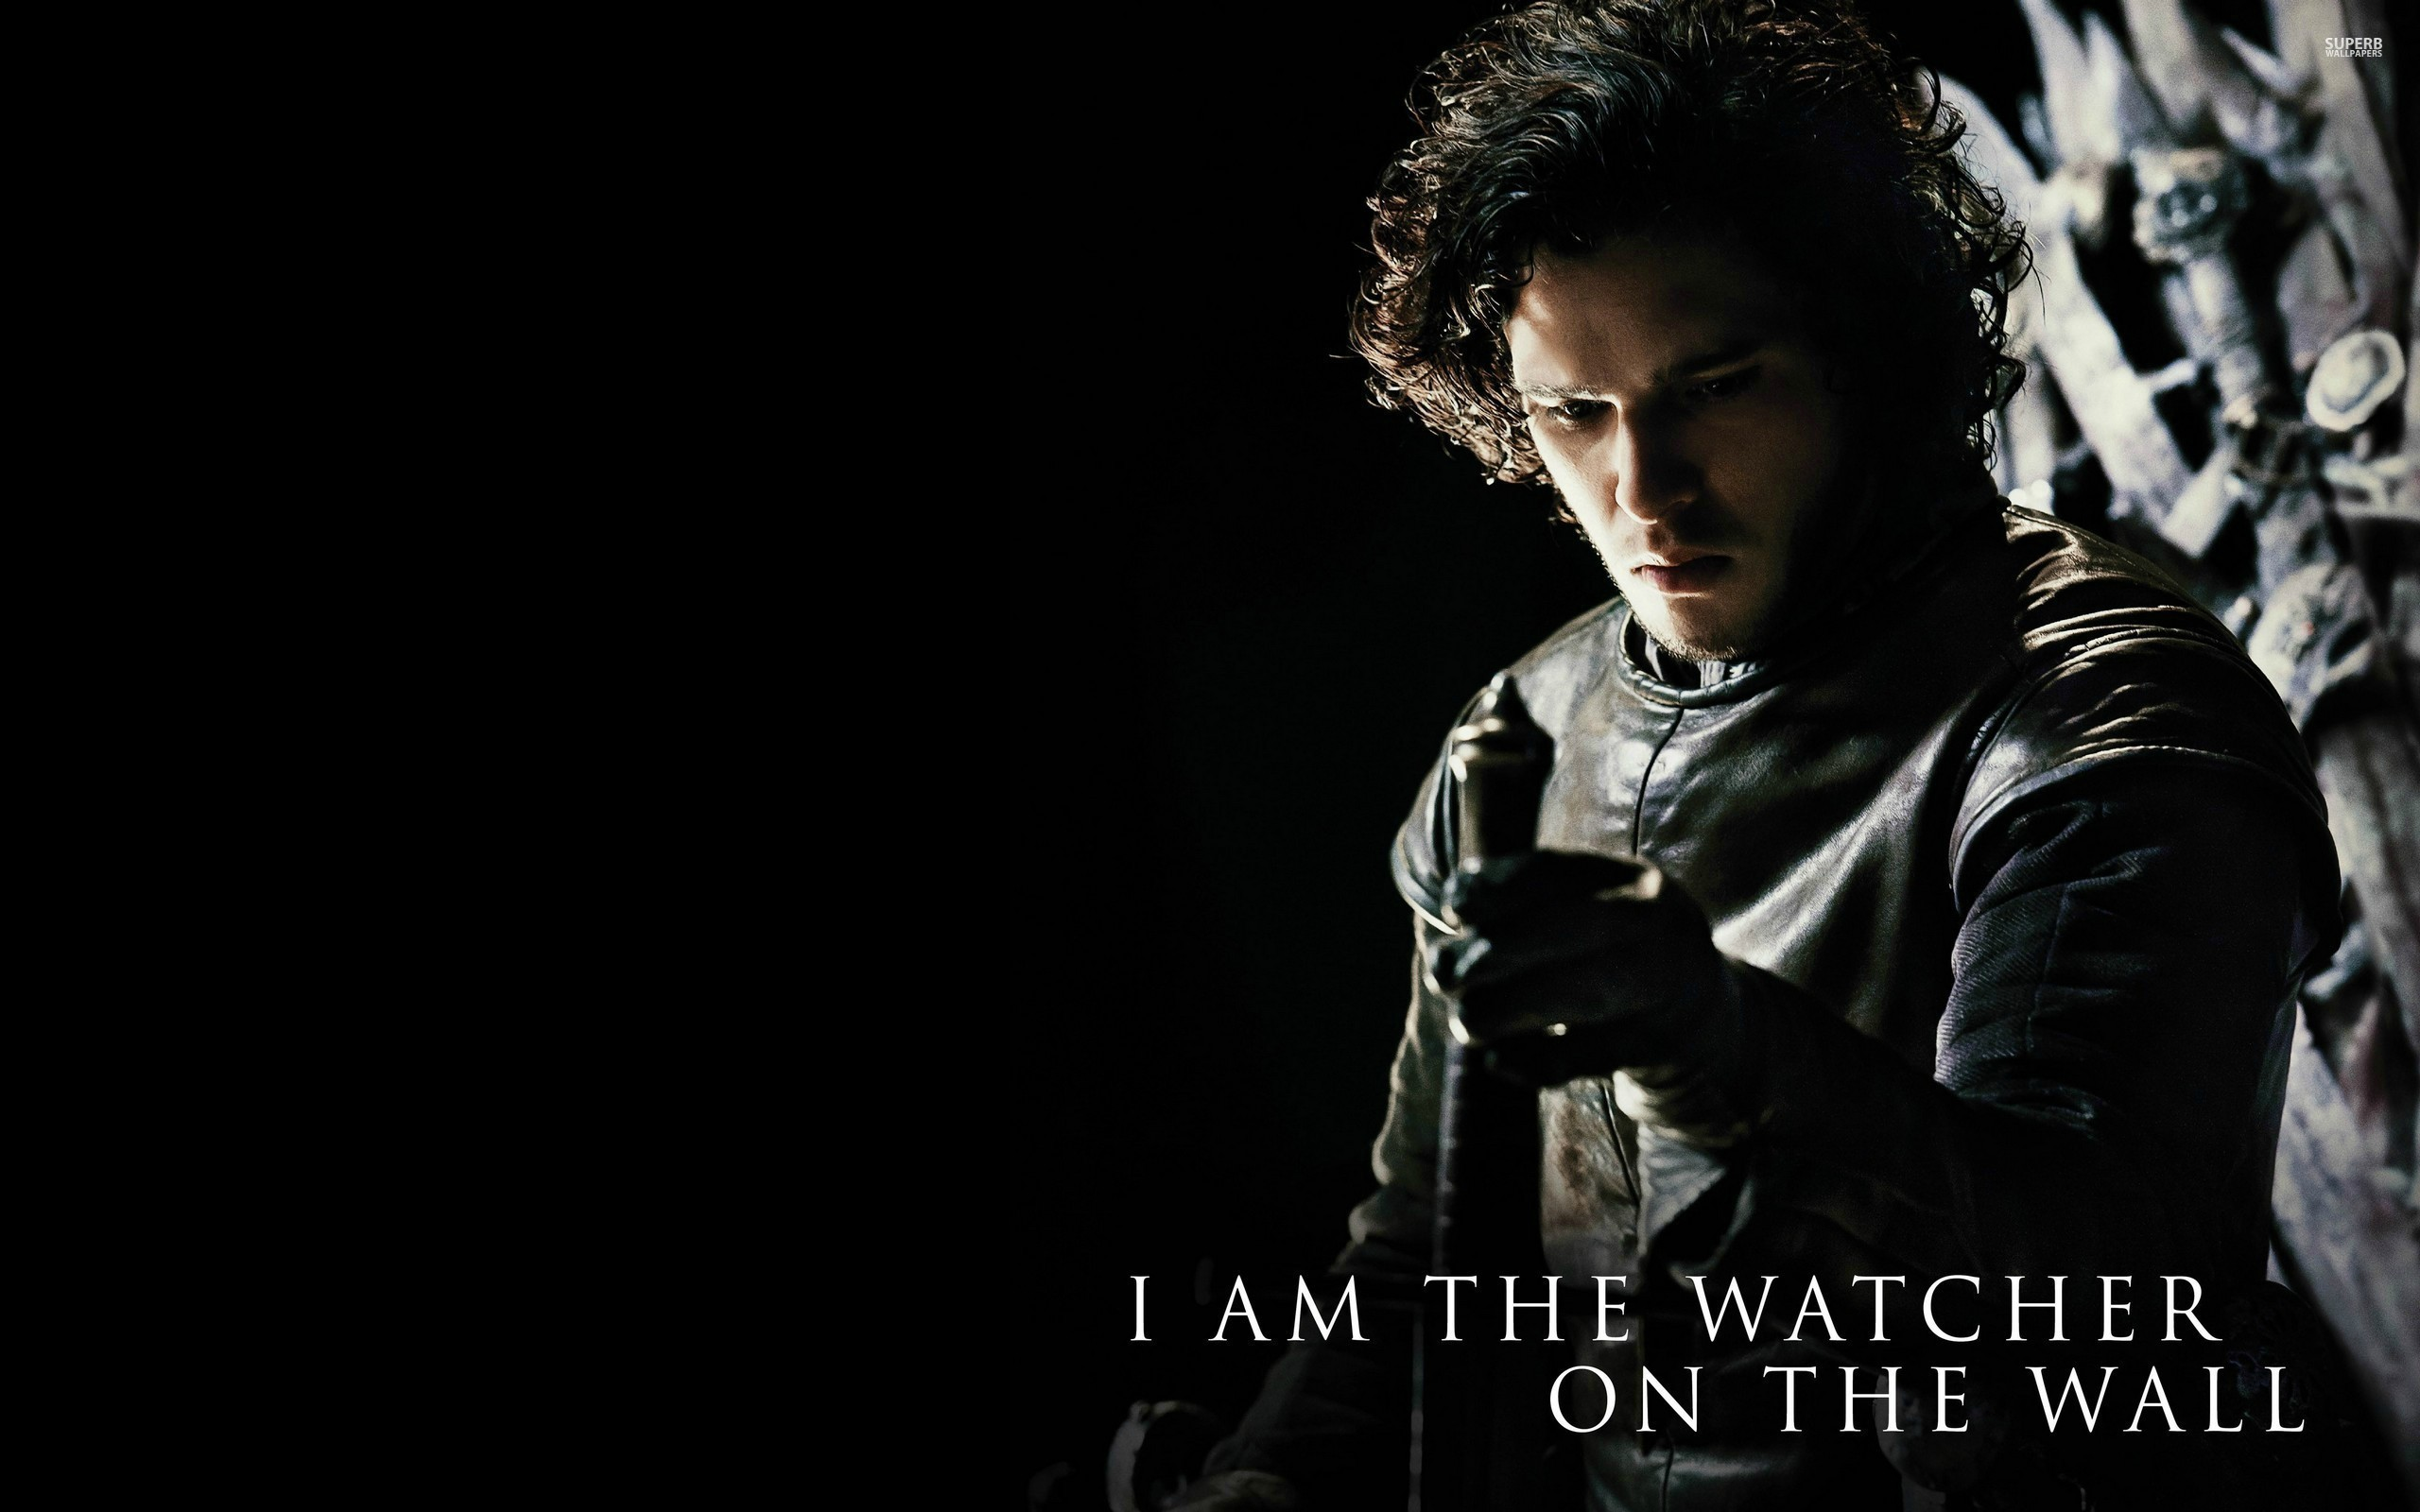 Game of Thrones wallpaper HD free download   Wallpapers, Backgrounds .